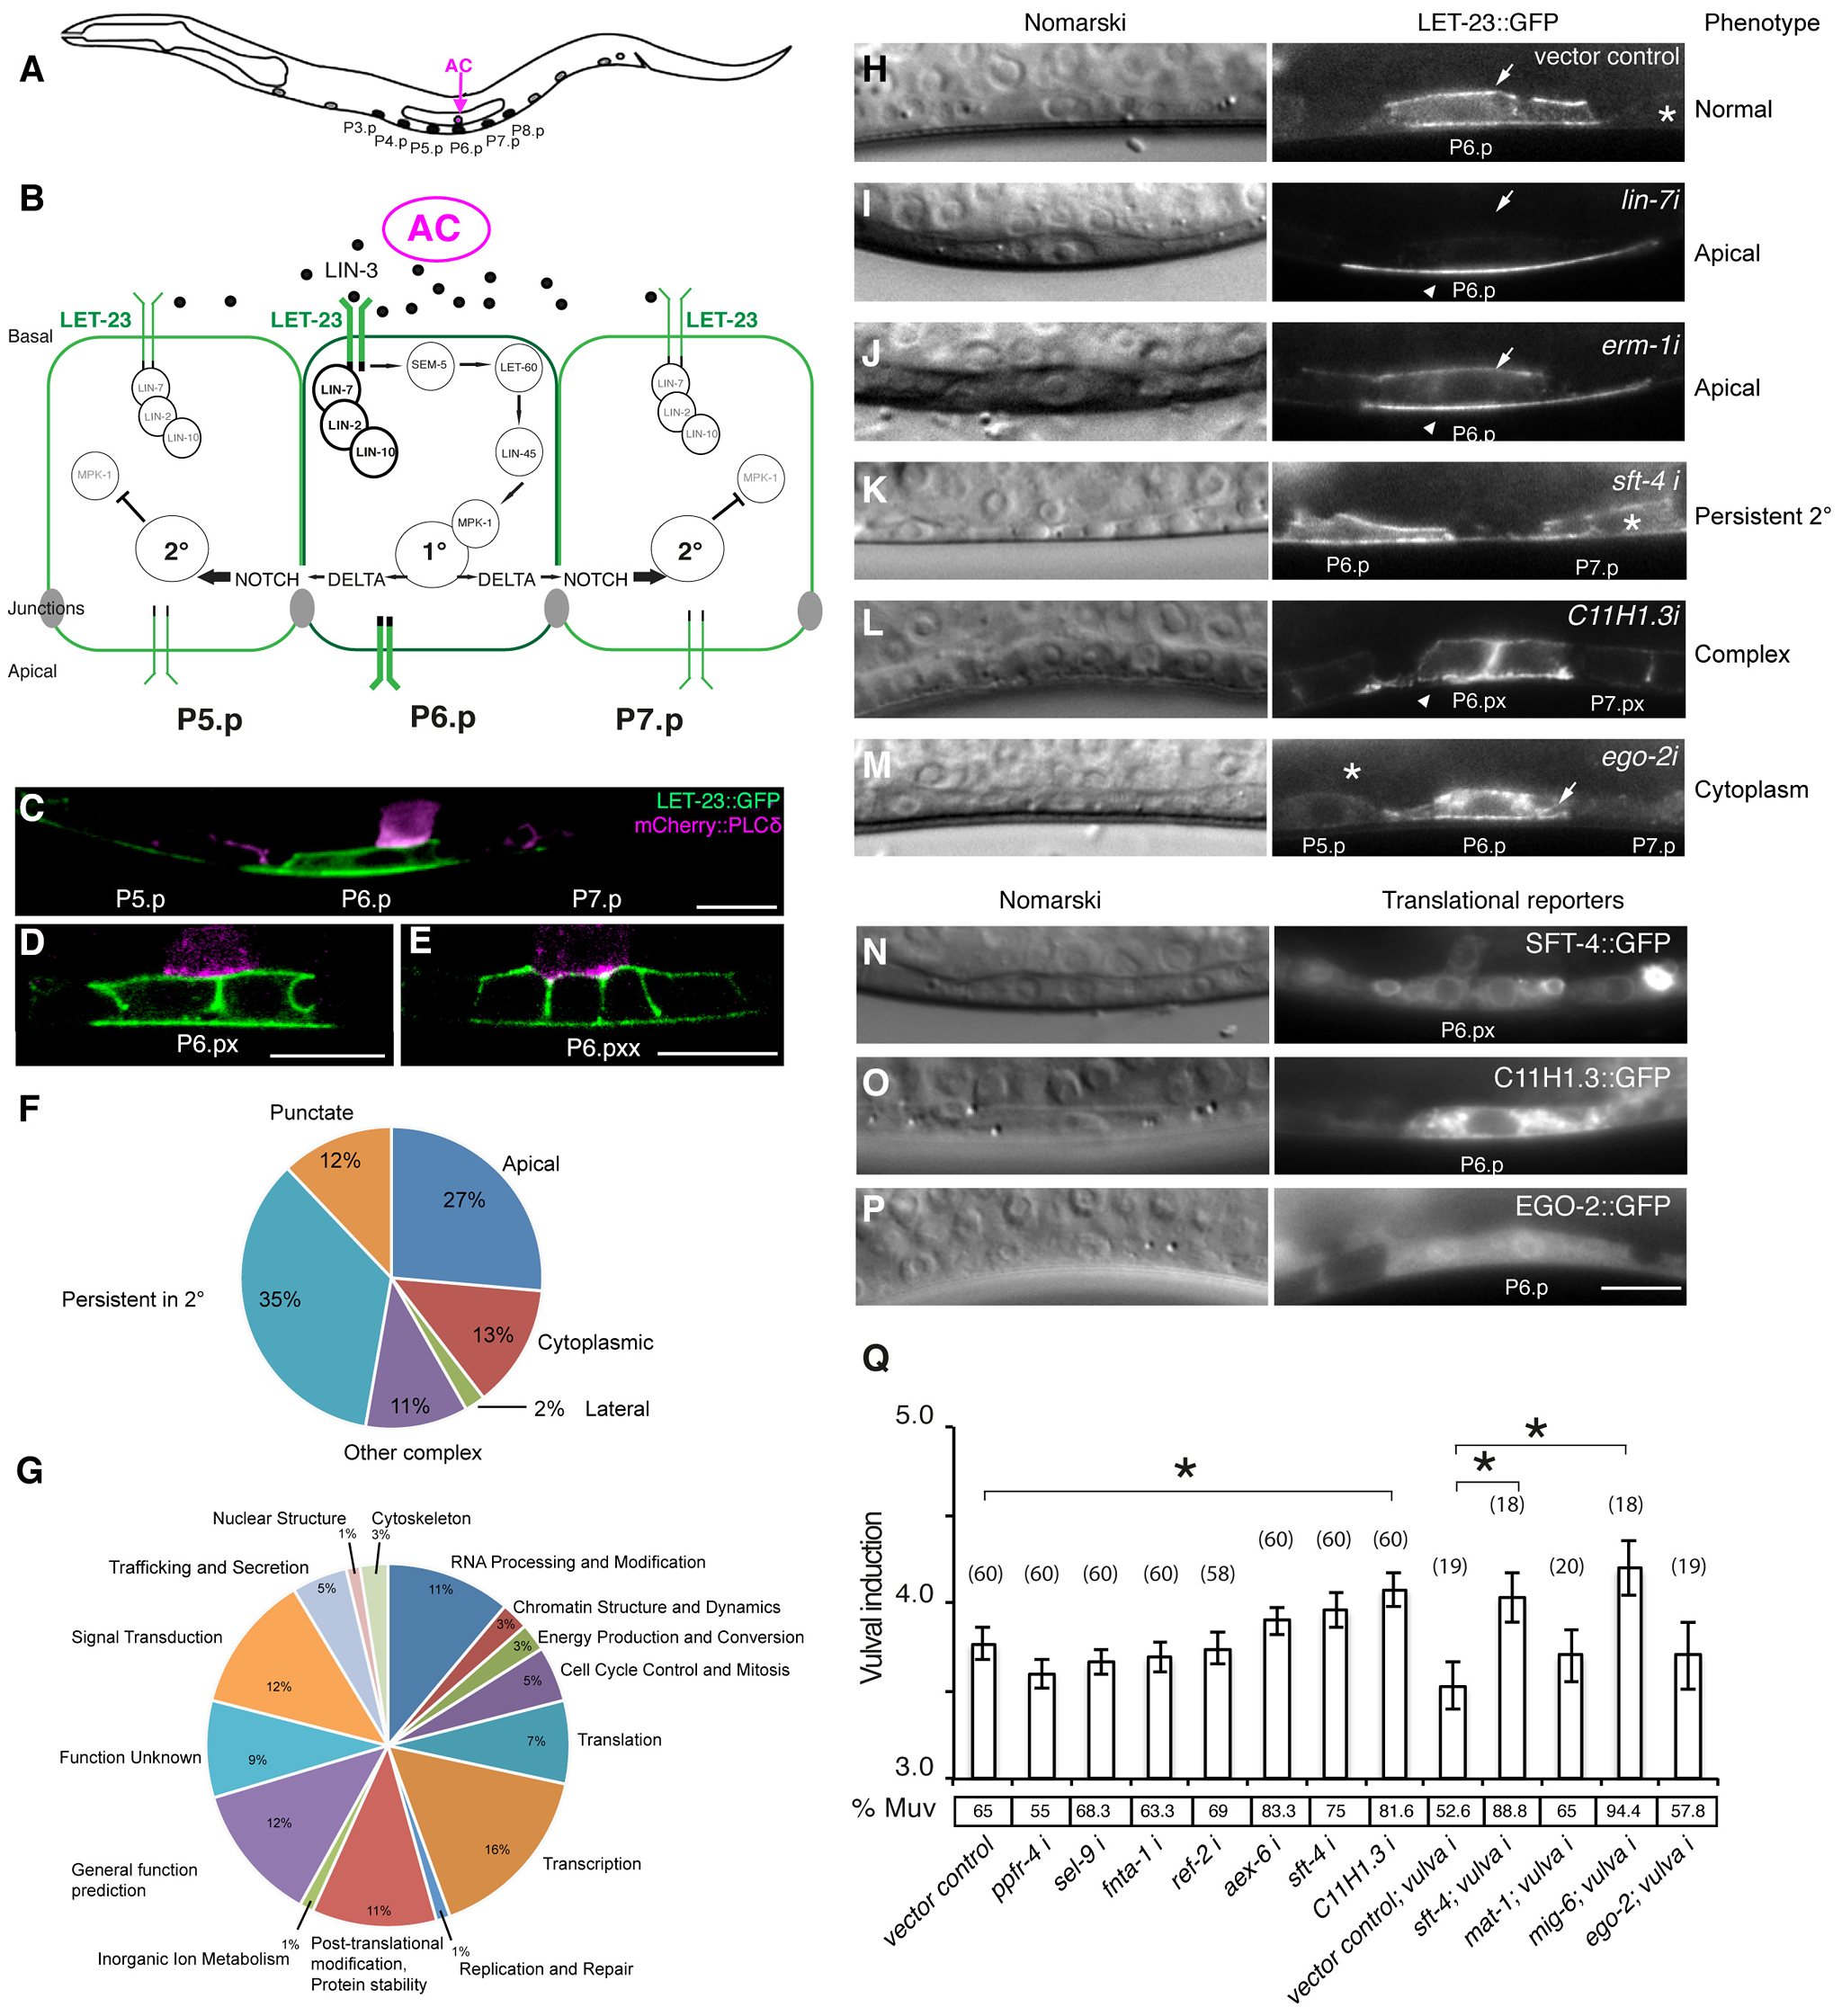 Identification of genes regulating LET-23 EGFR localization and signaling.